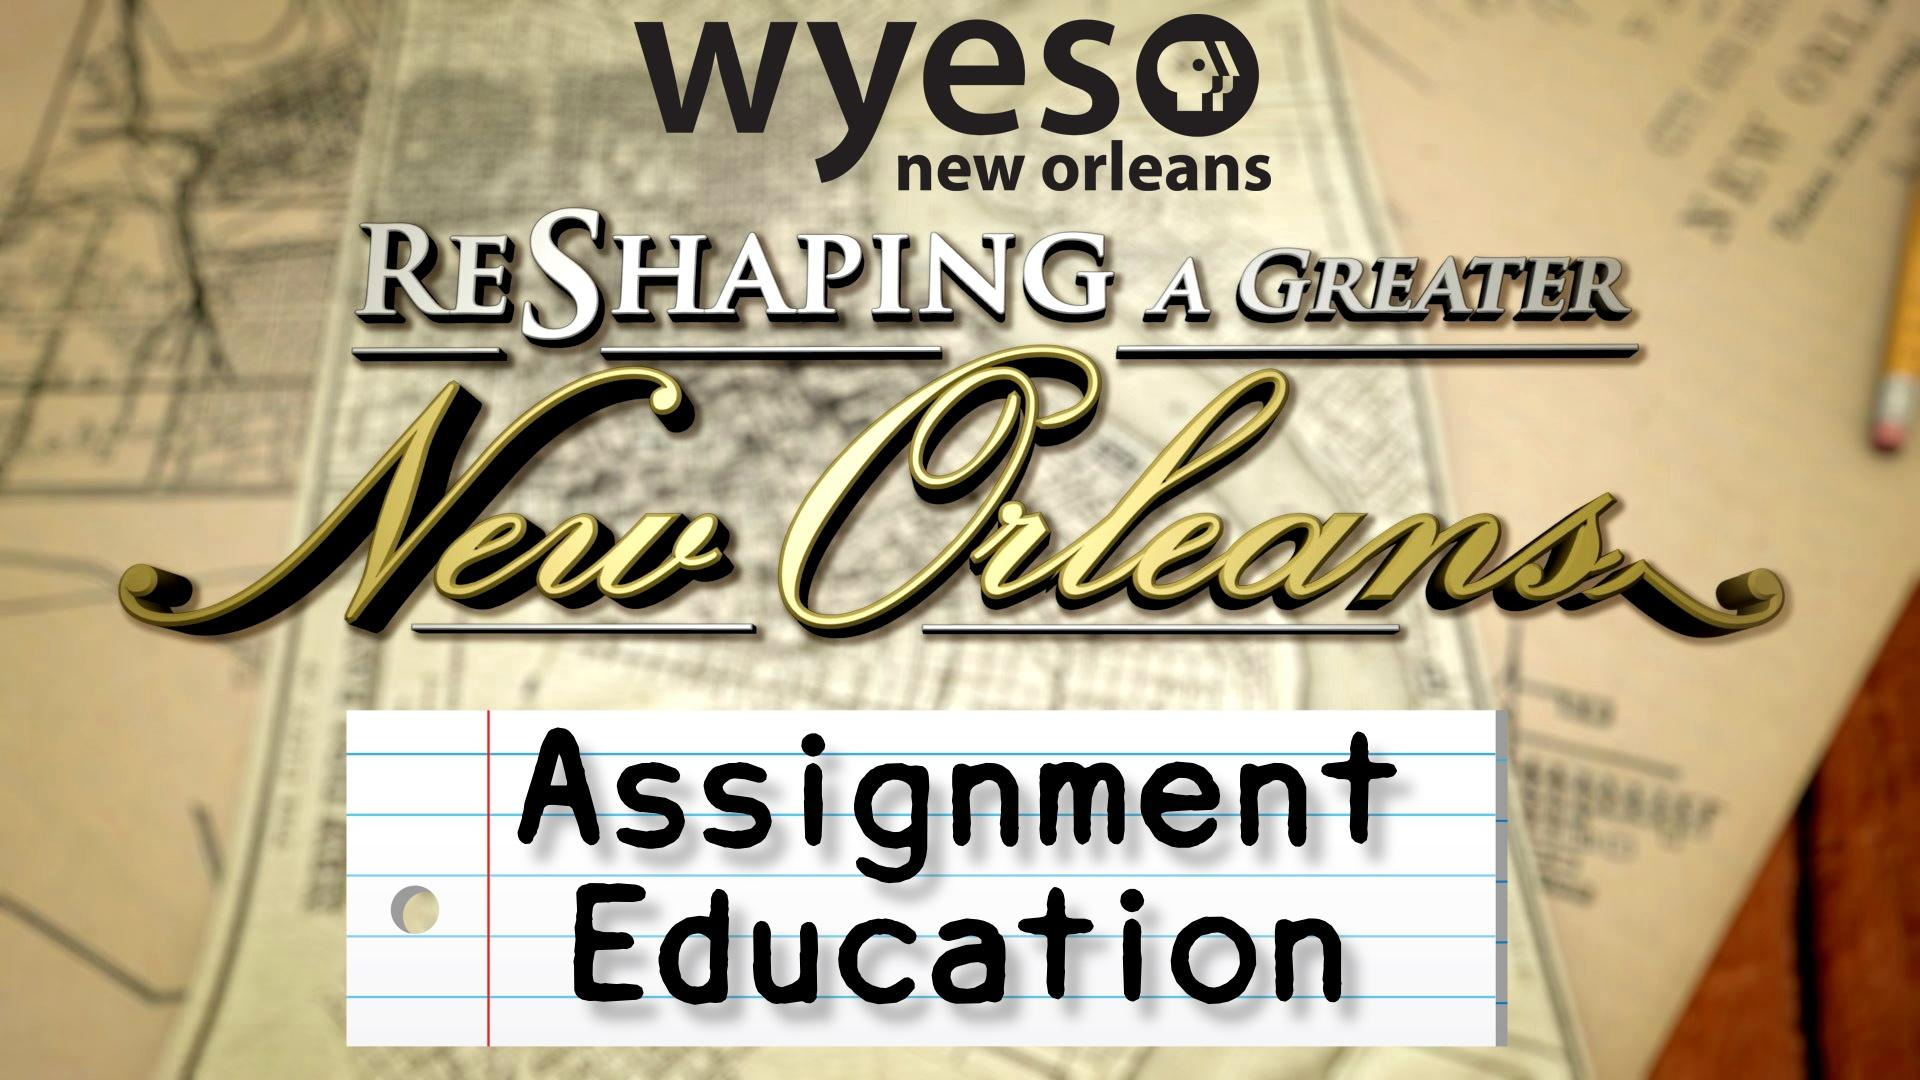 Assignment Education logo